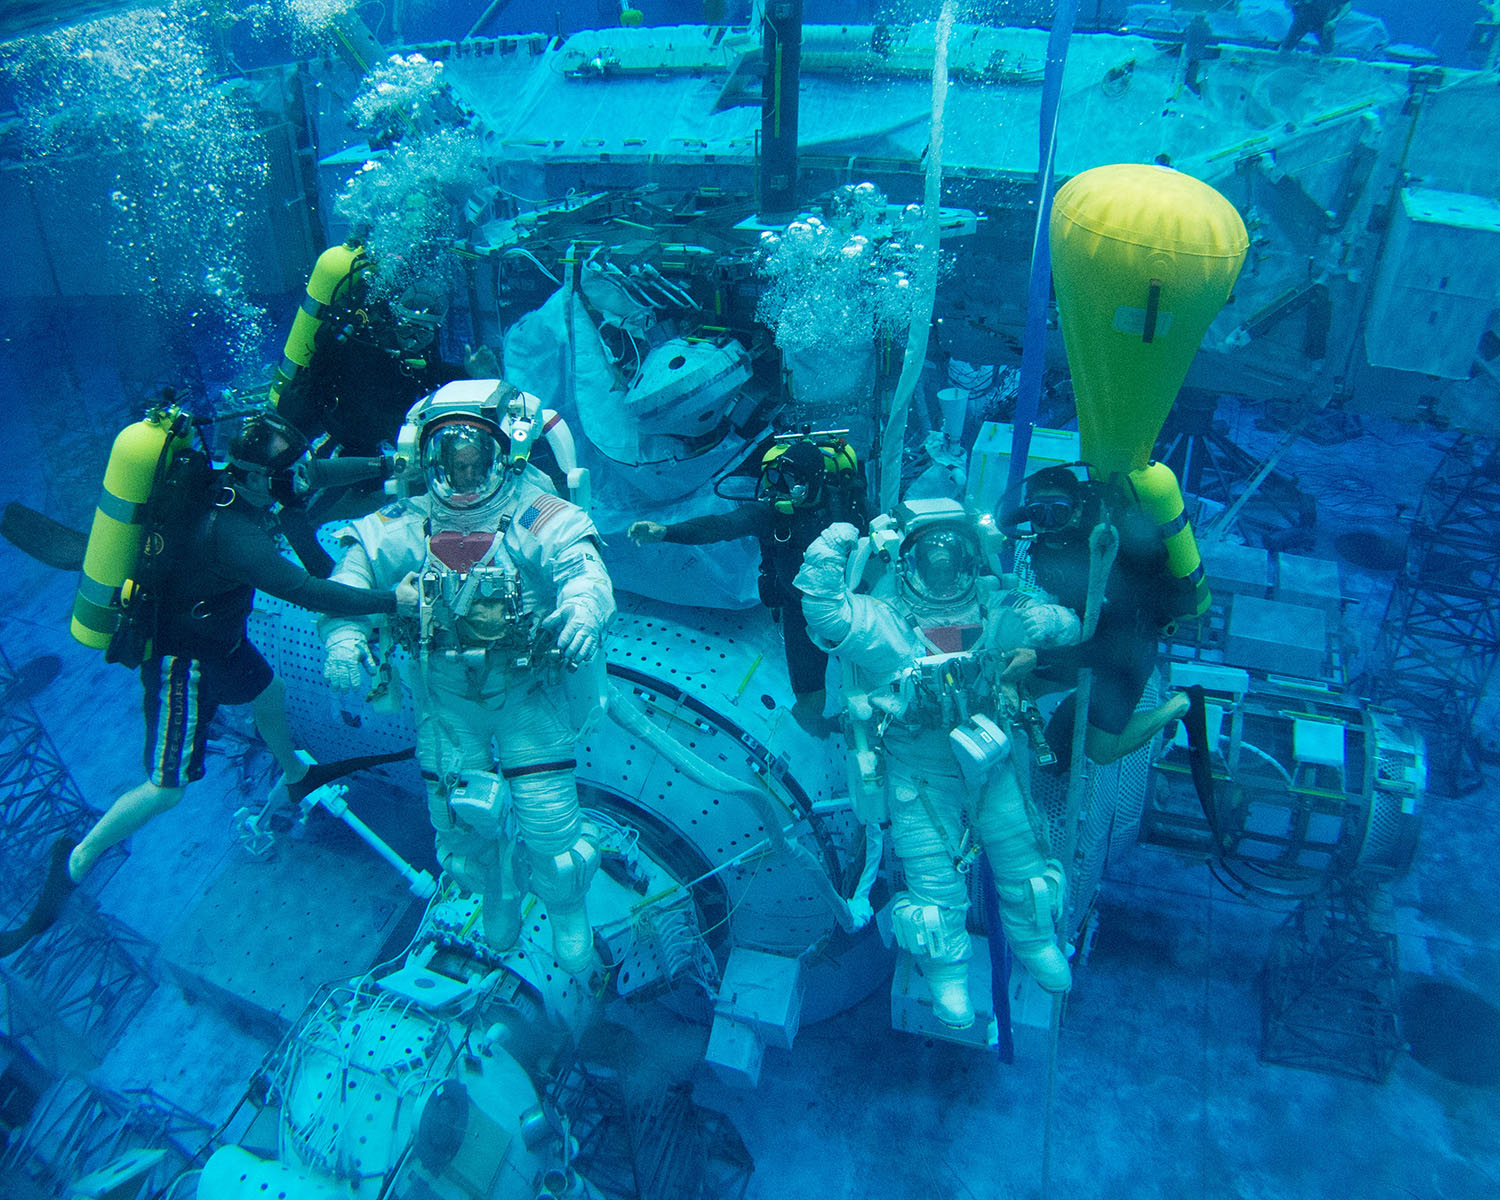 Scott Tingle (right) training with fellow astronaut Steve Swanson at NASA's Neutral Buoyancy Lab, the largest swimming pool in the world. <br>Photo Credit: NASA